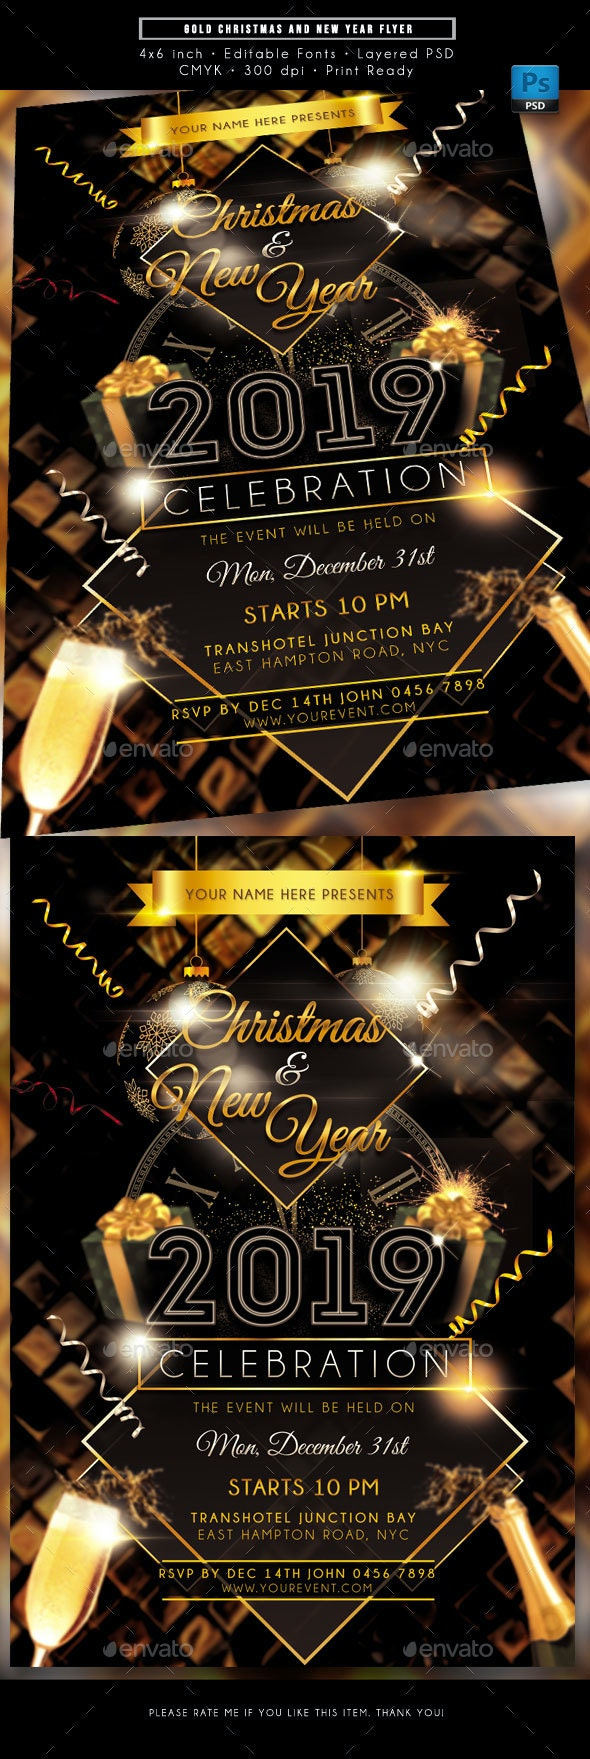 Gold Christmas New Year Celebration Flyer - Holidays Events